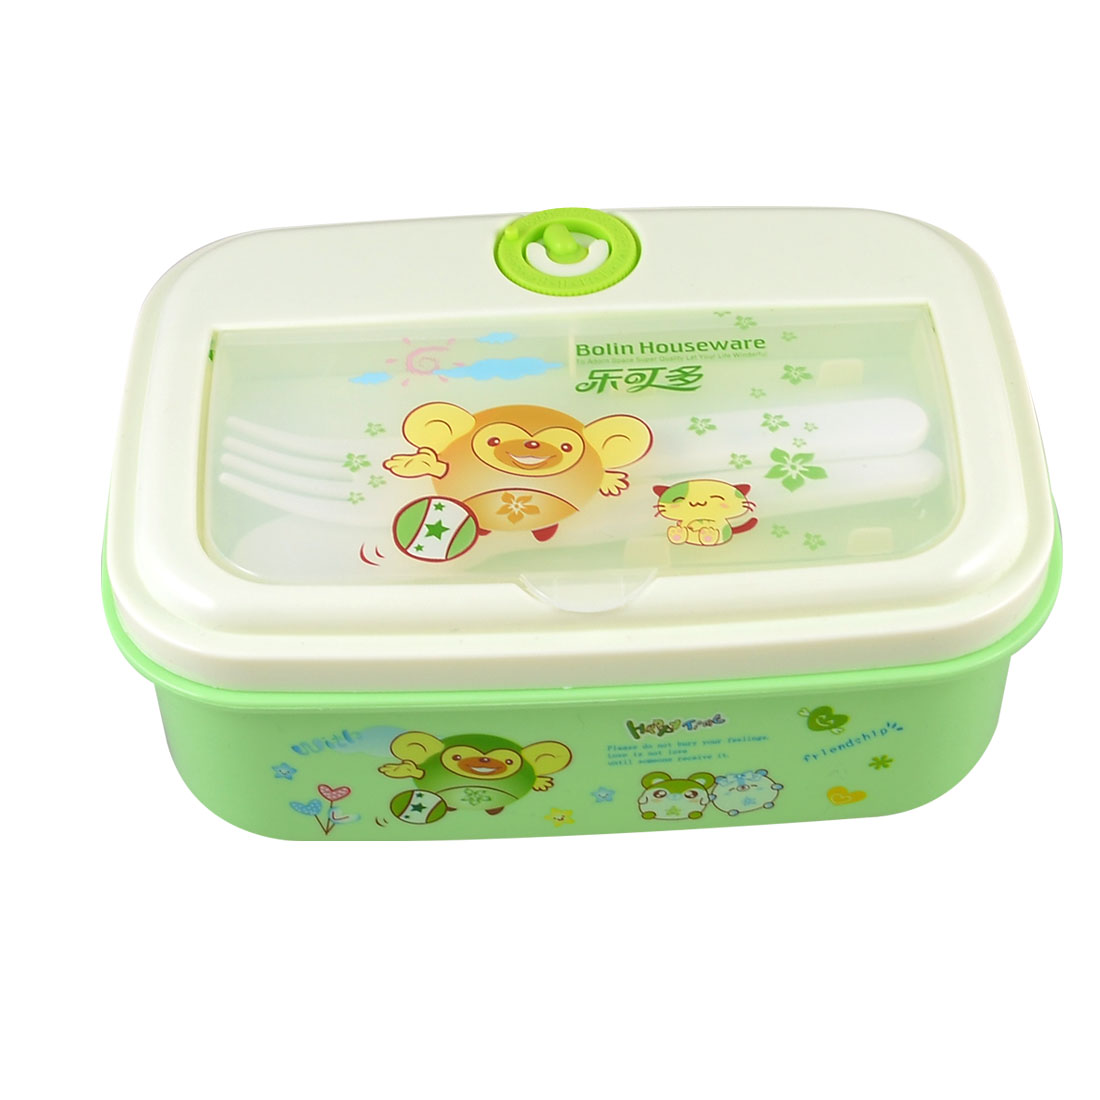 Picnic Cartoon Pattern Green Plastic Lunch Box Case Food Container w Spoon Fork